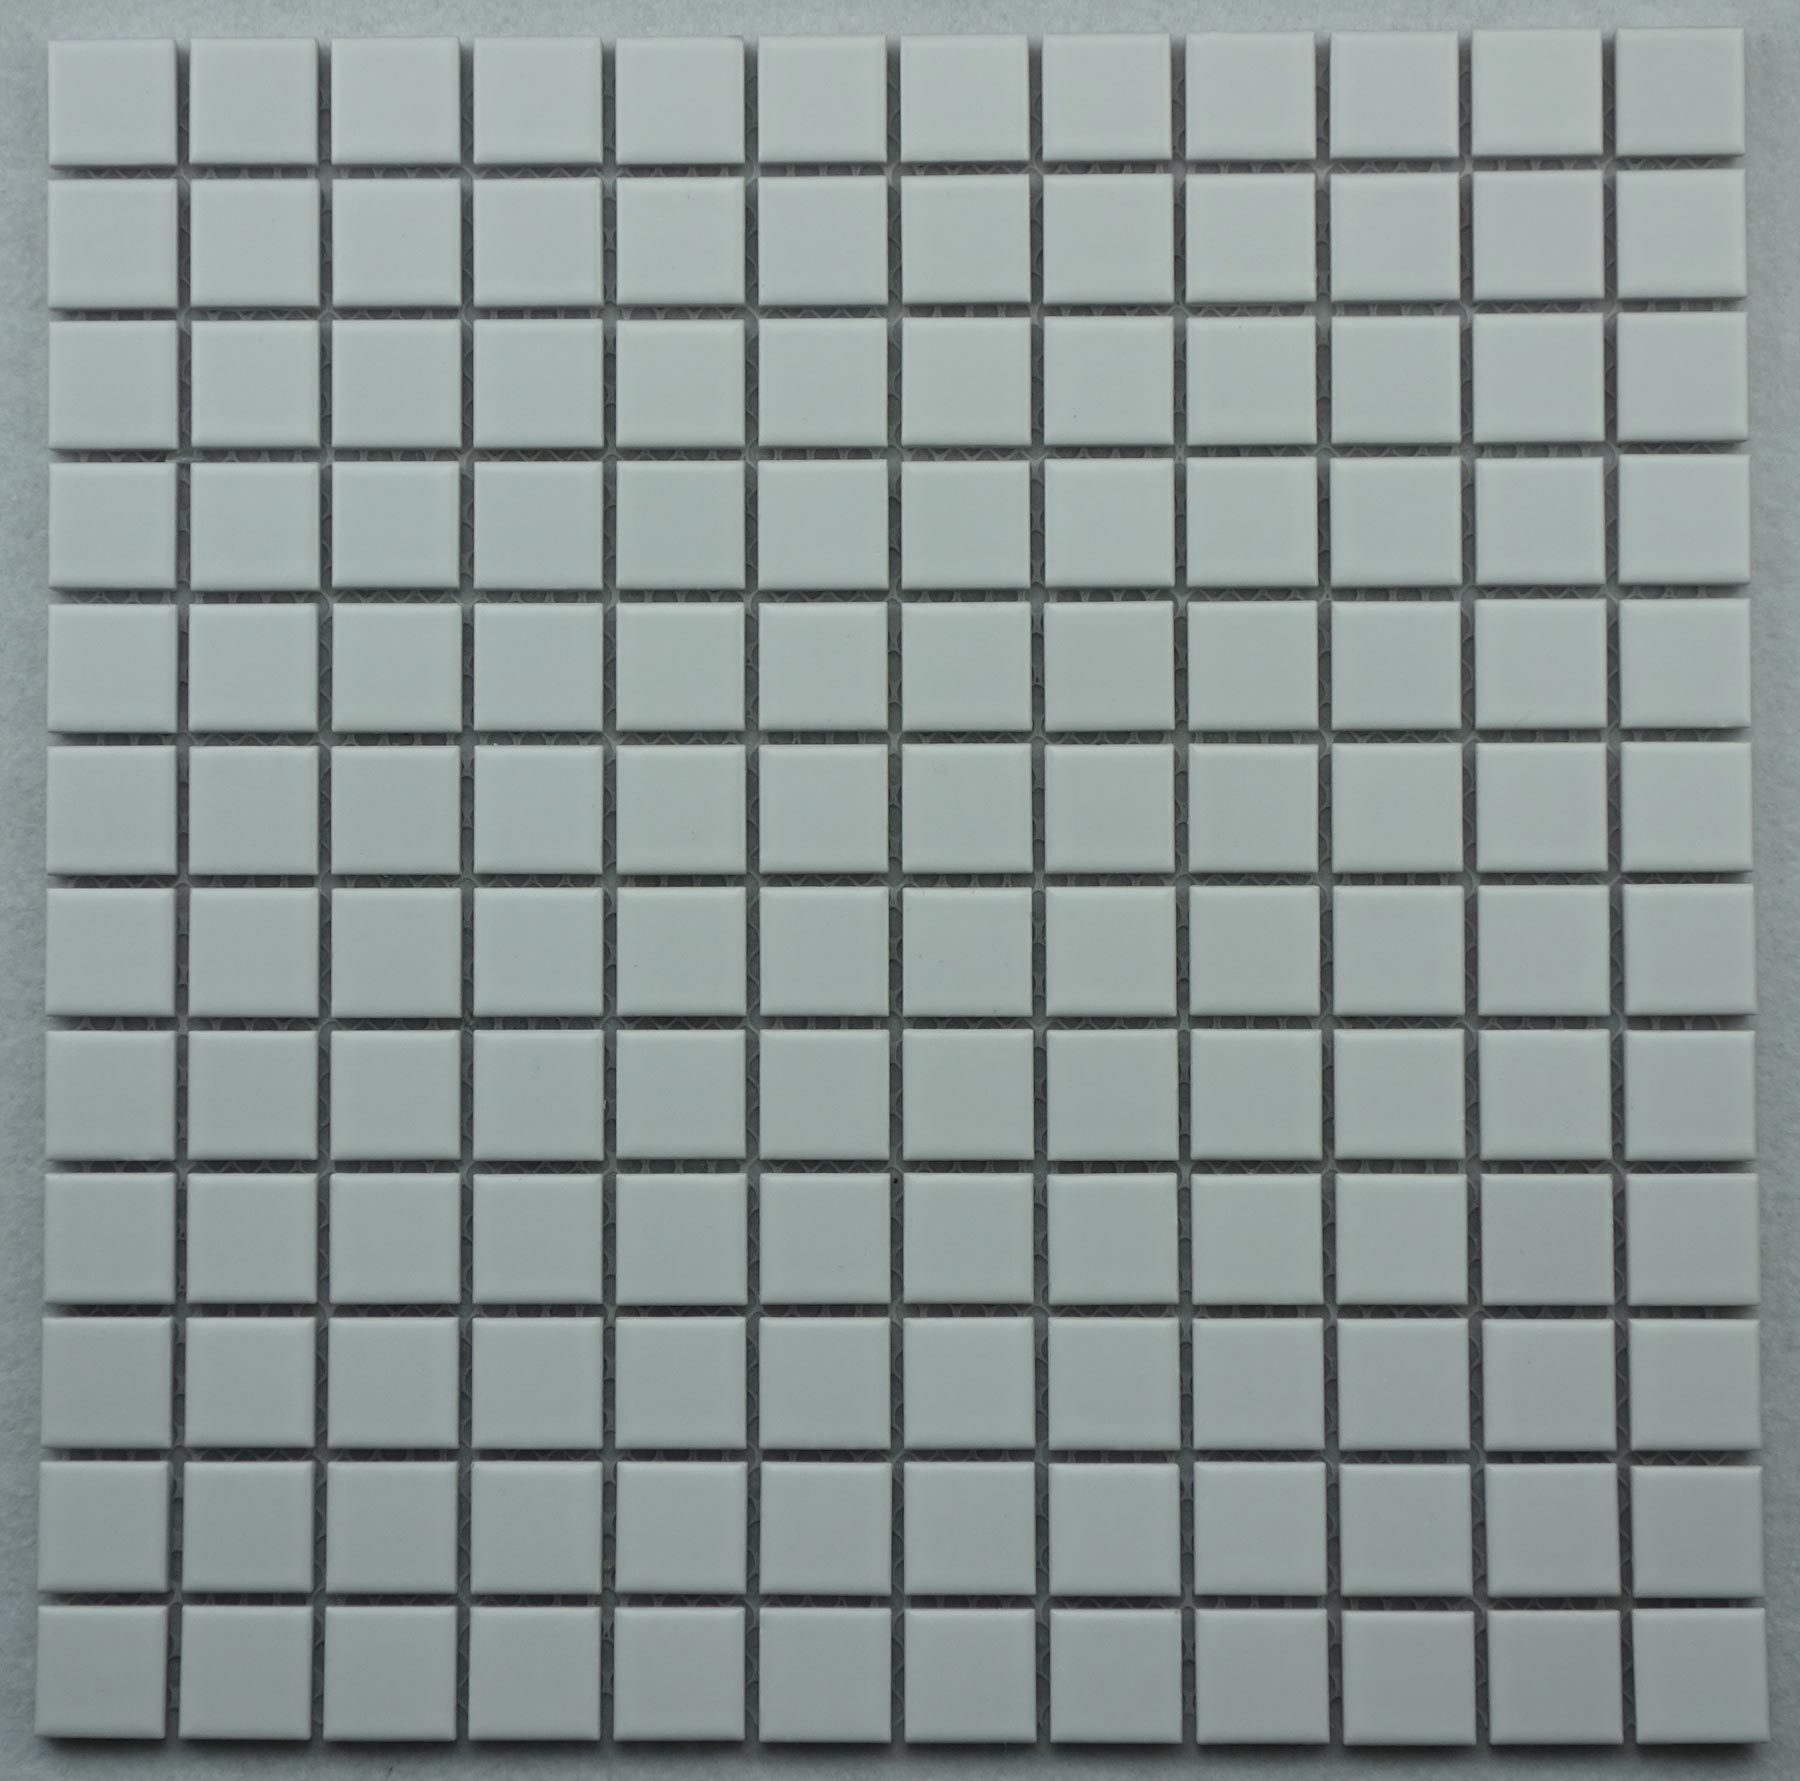 Mg white cc mosaics collection ceramic tiles by roca cc mg white cc mosaics collection ceramic tiles by roca dailygadgetfo Images